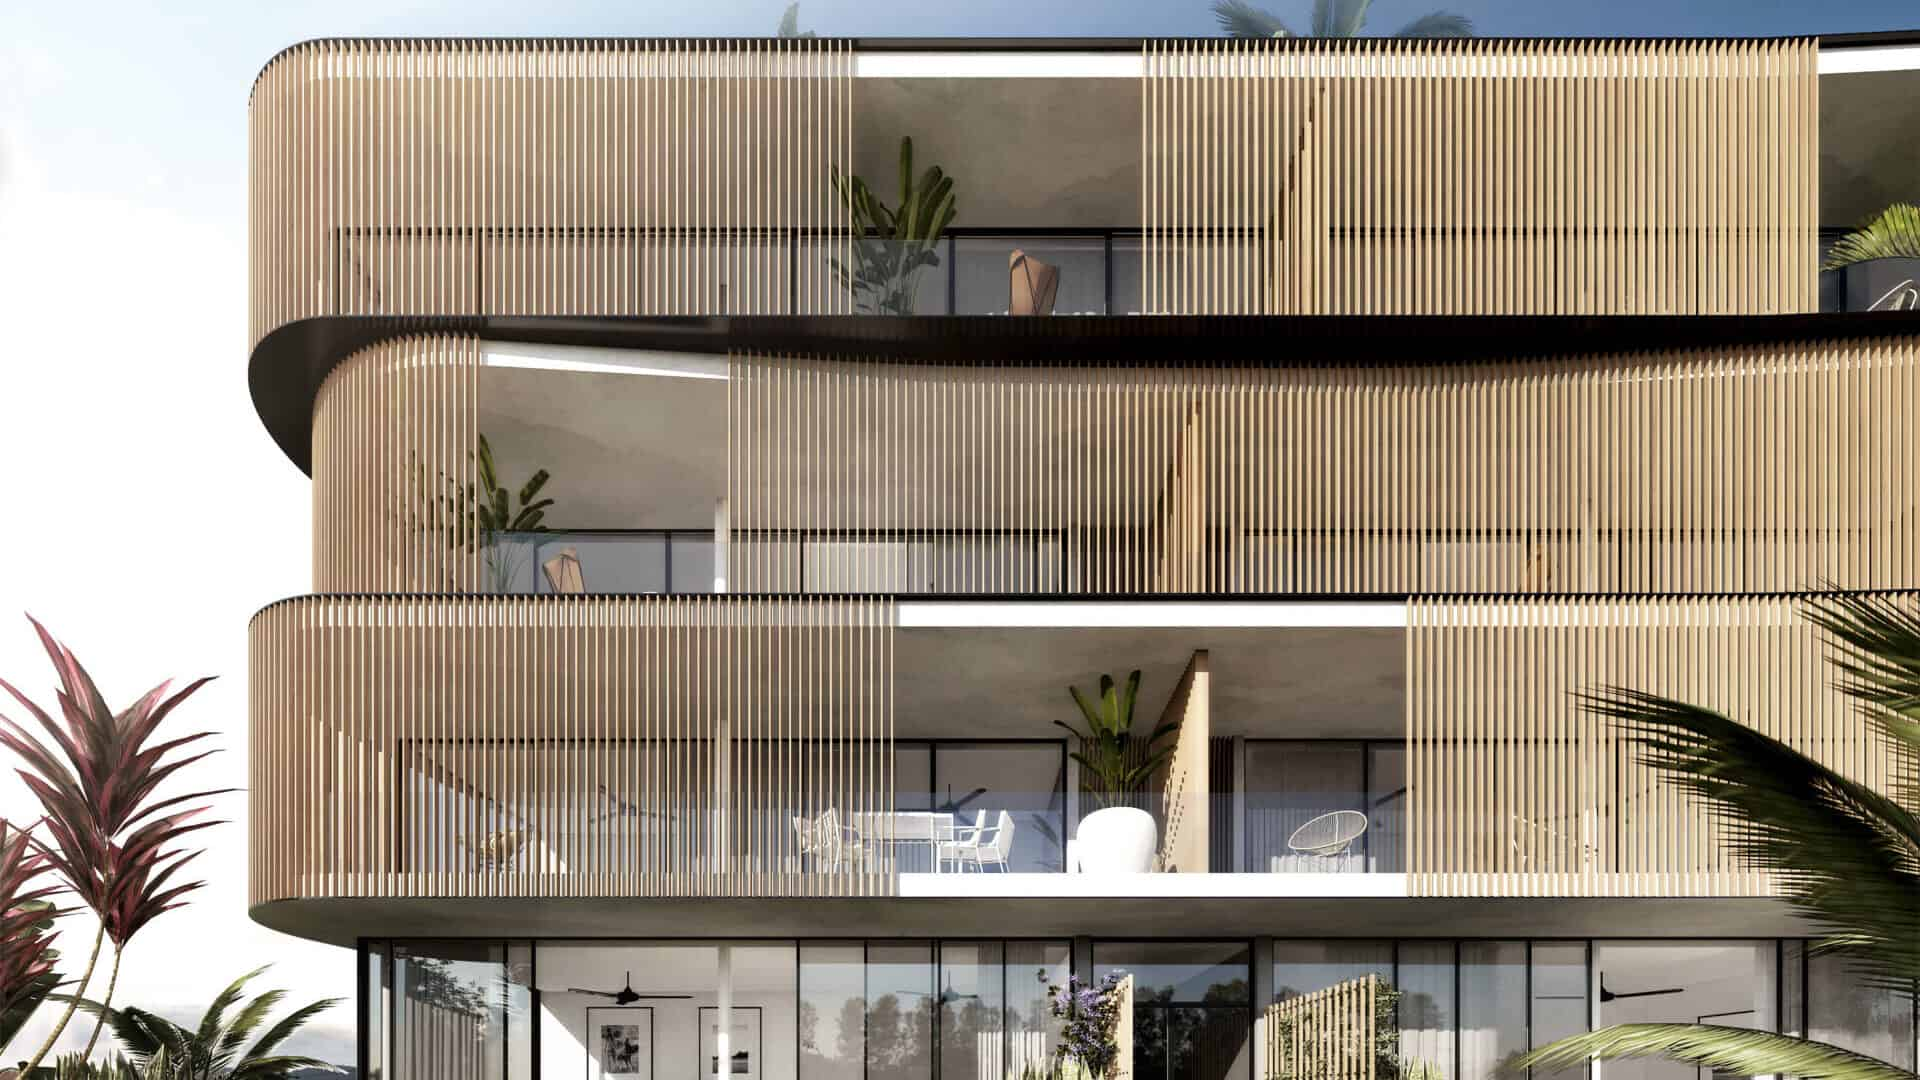 Buy new design ground floor apartment in Talamanca